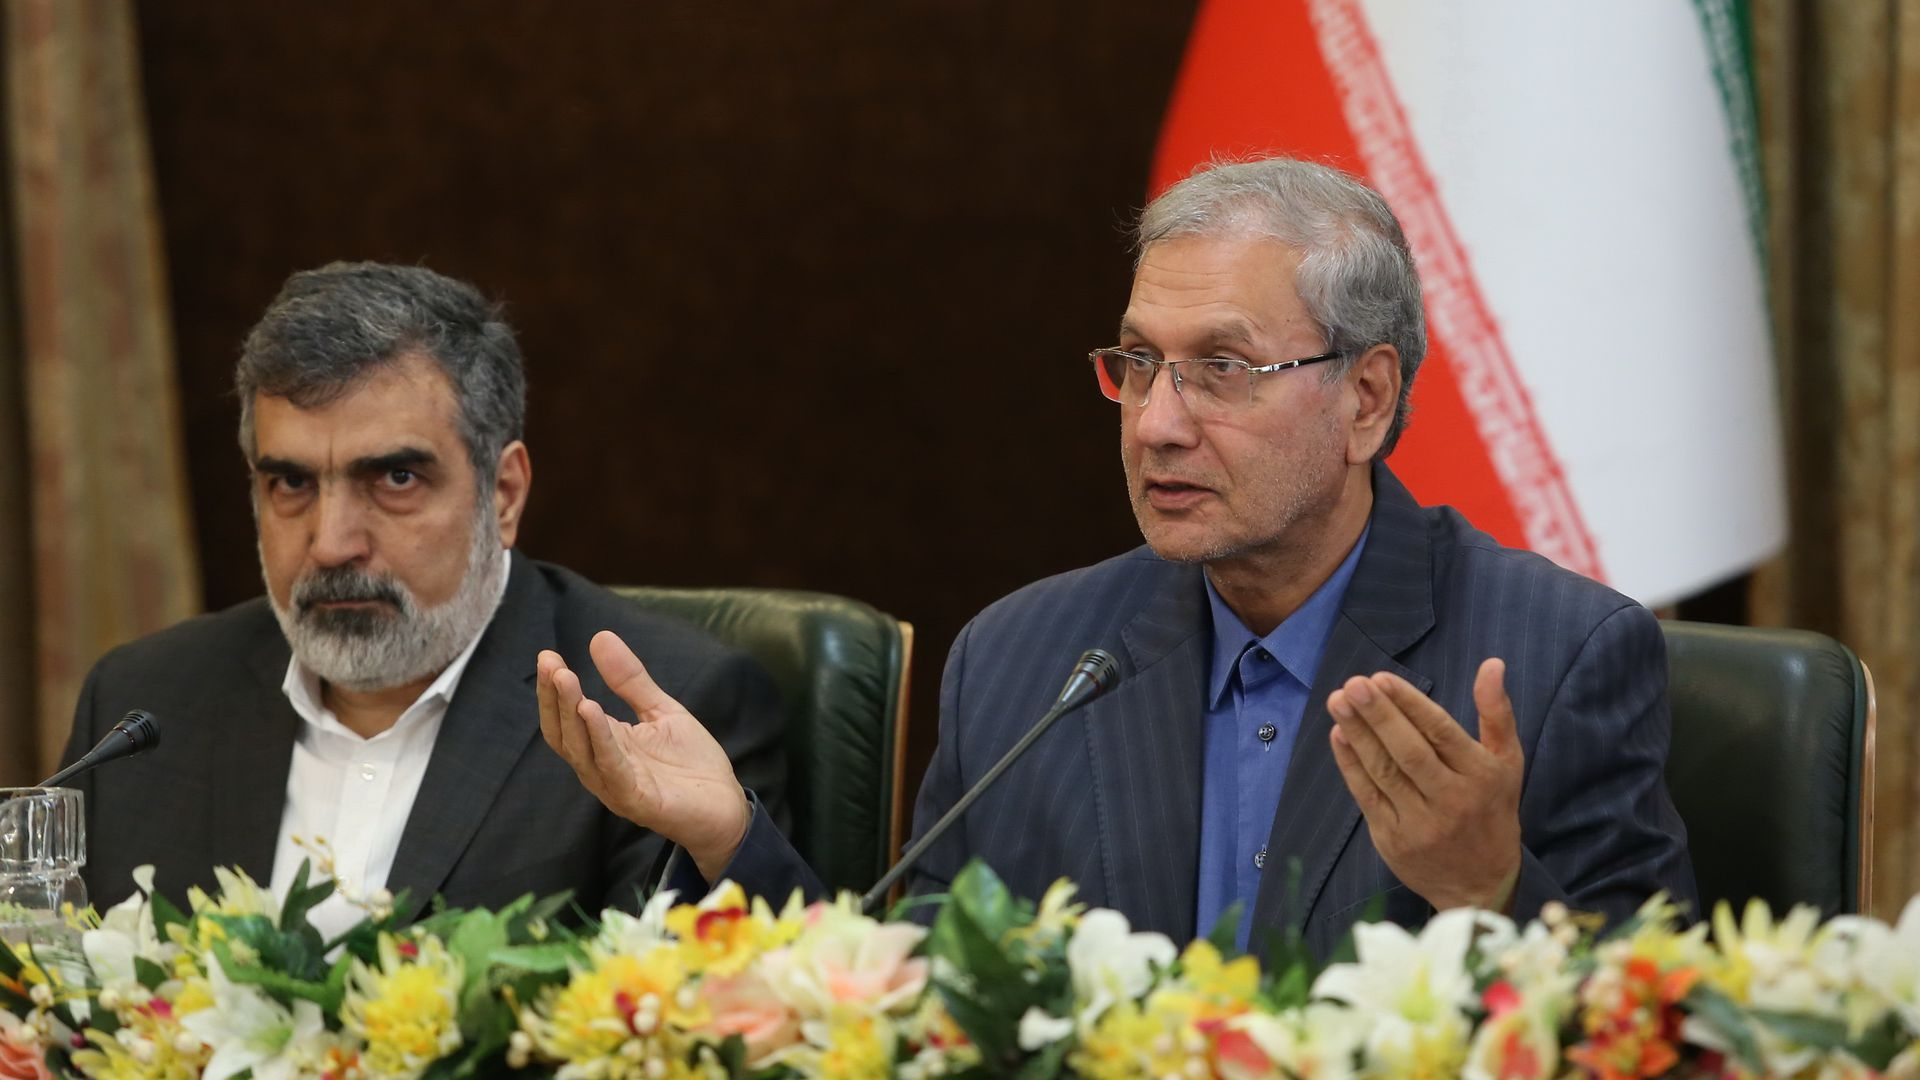 Behrouz Kamalvandi and Ali Rabiei seated while giving a press conference